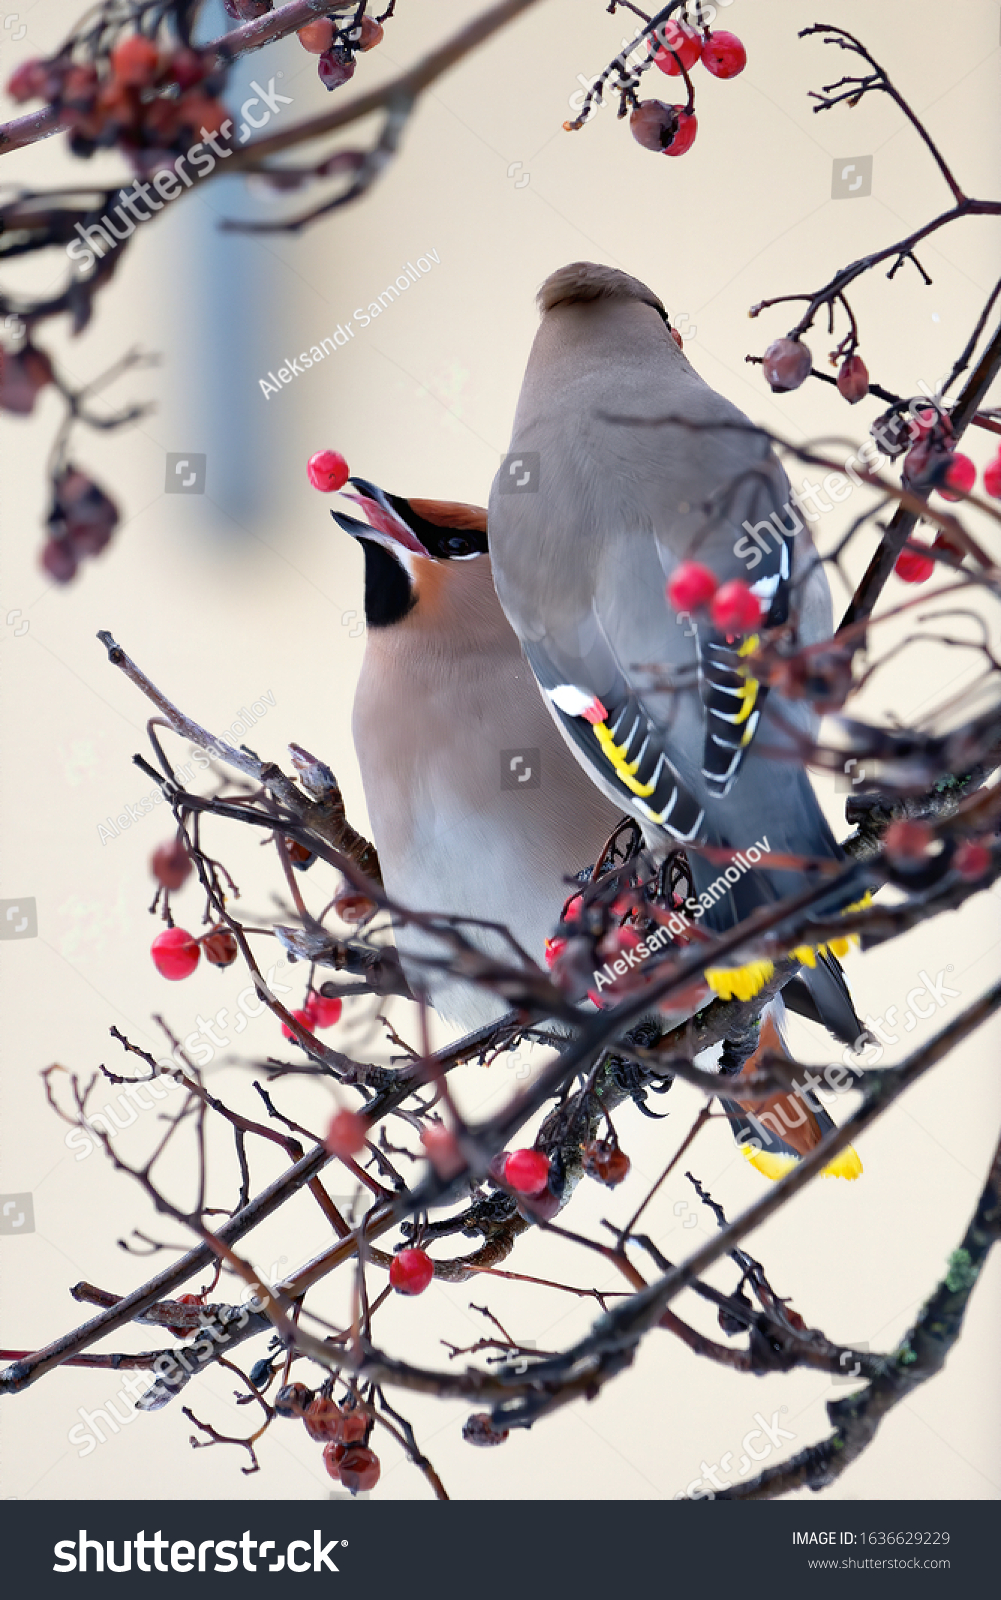 Two Bohemian Waxwings eating berries together.